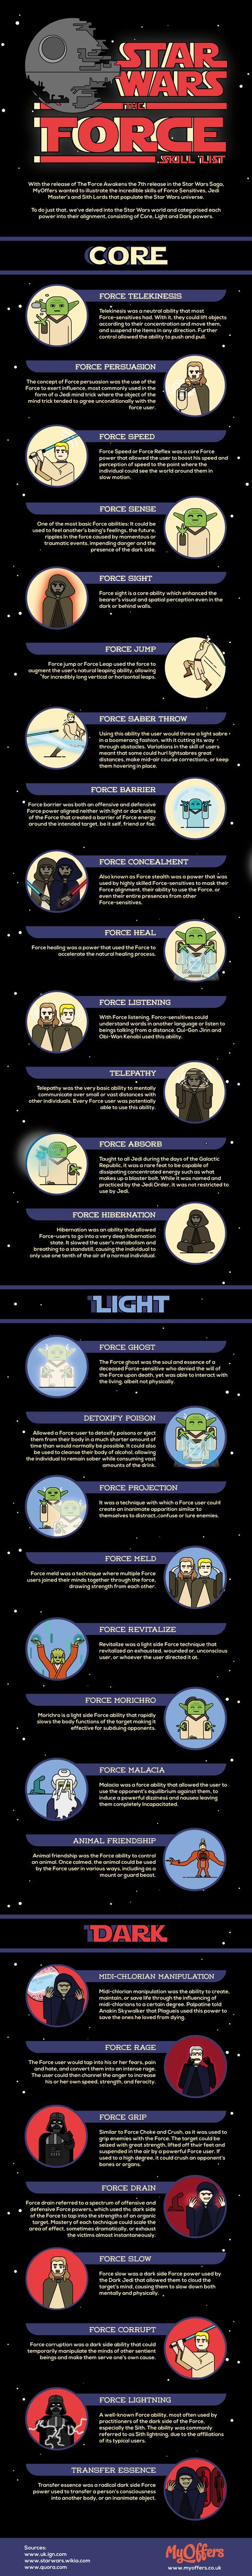 Star Wars – The Force Skill List #infographic #Entertainment